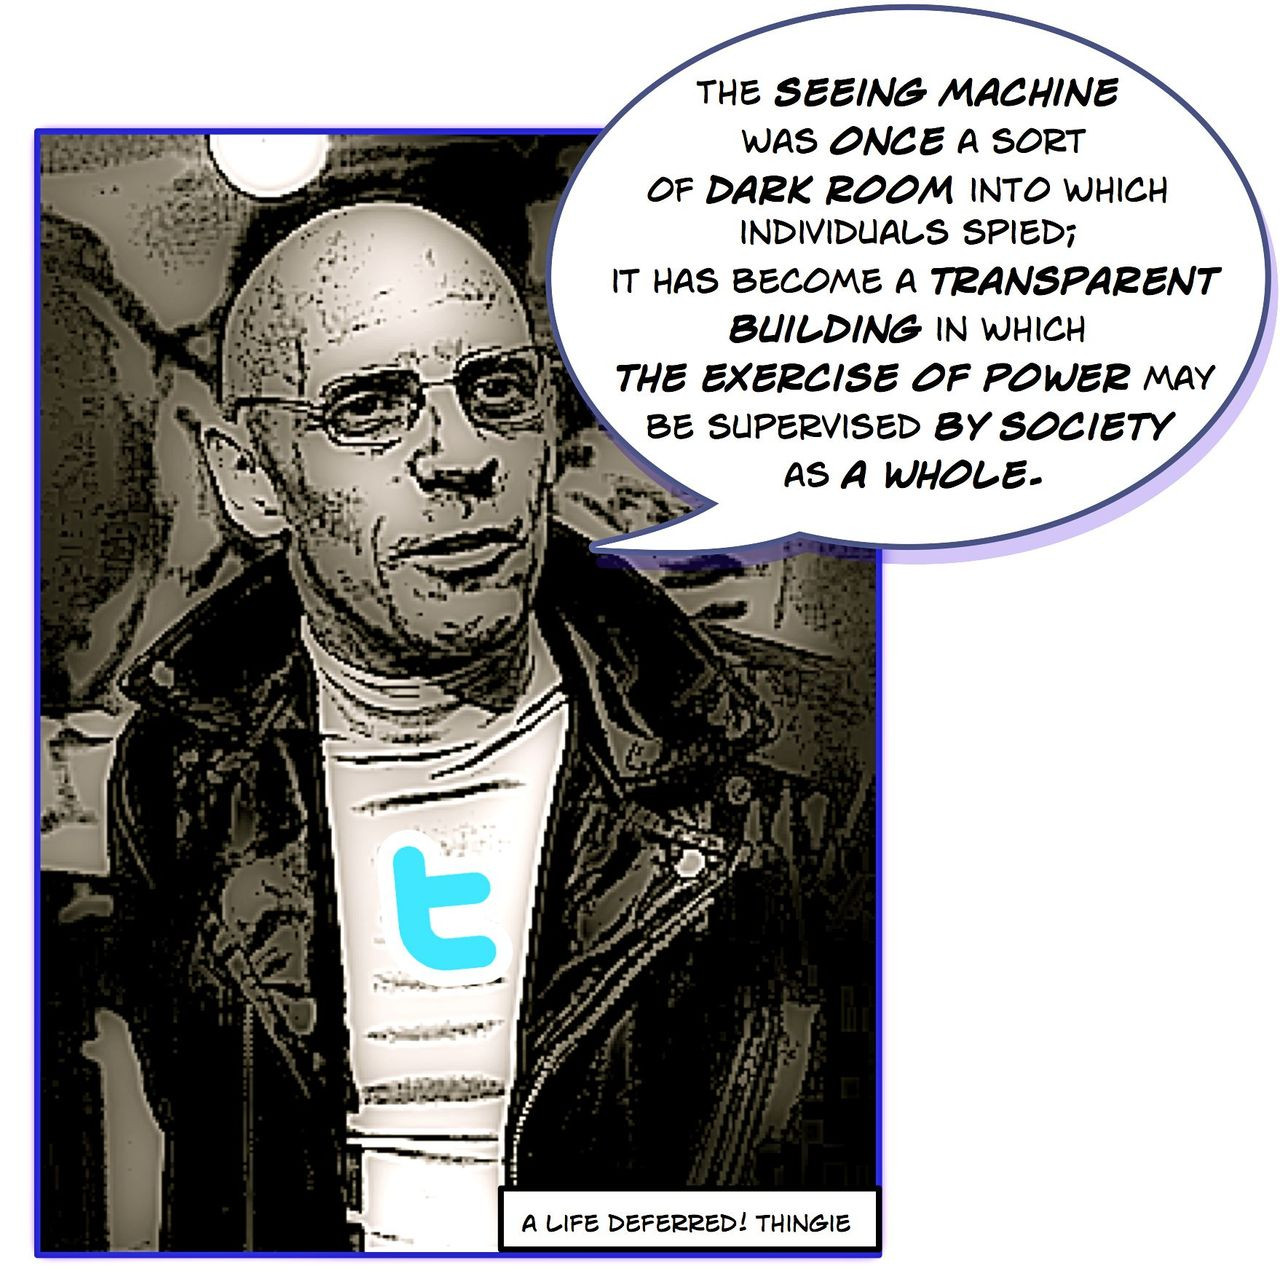 michel foucault Michel foucault was a french philosopher and historian his best known works are discipline and punish and the history of sexuality michel foucault was born on october 15 1926 in poitiers, france .